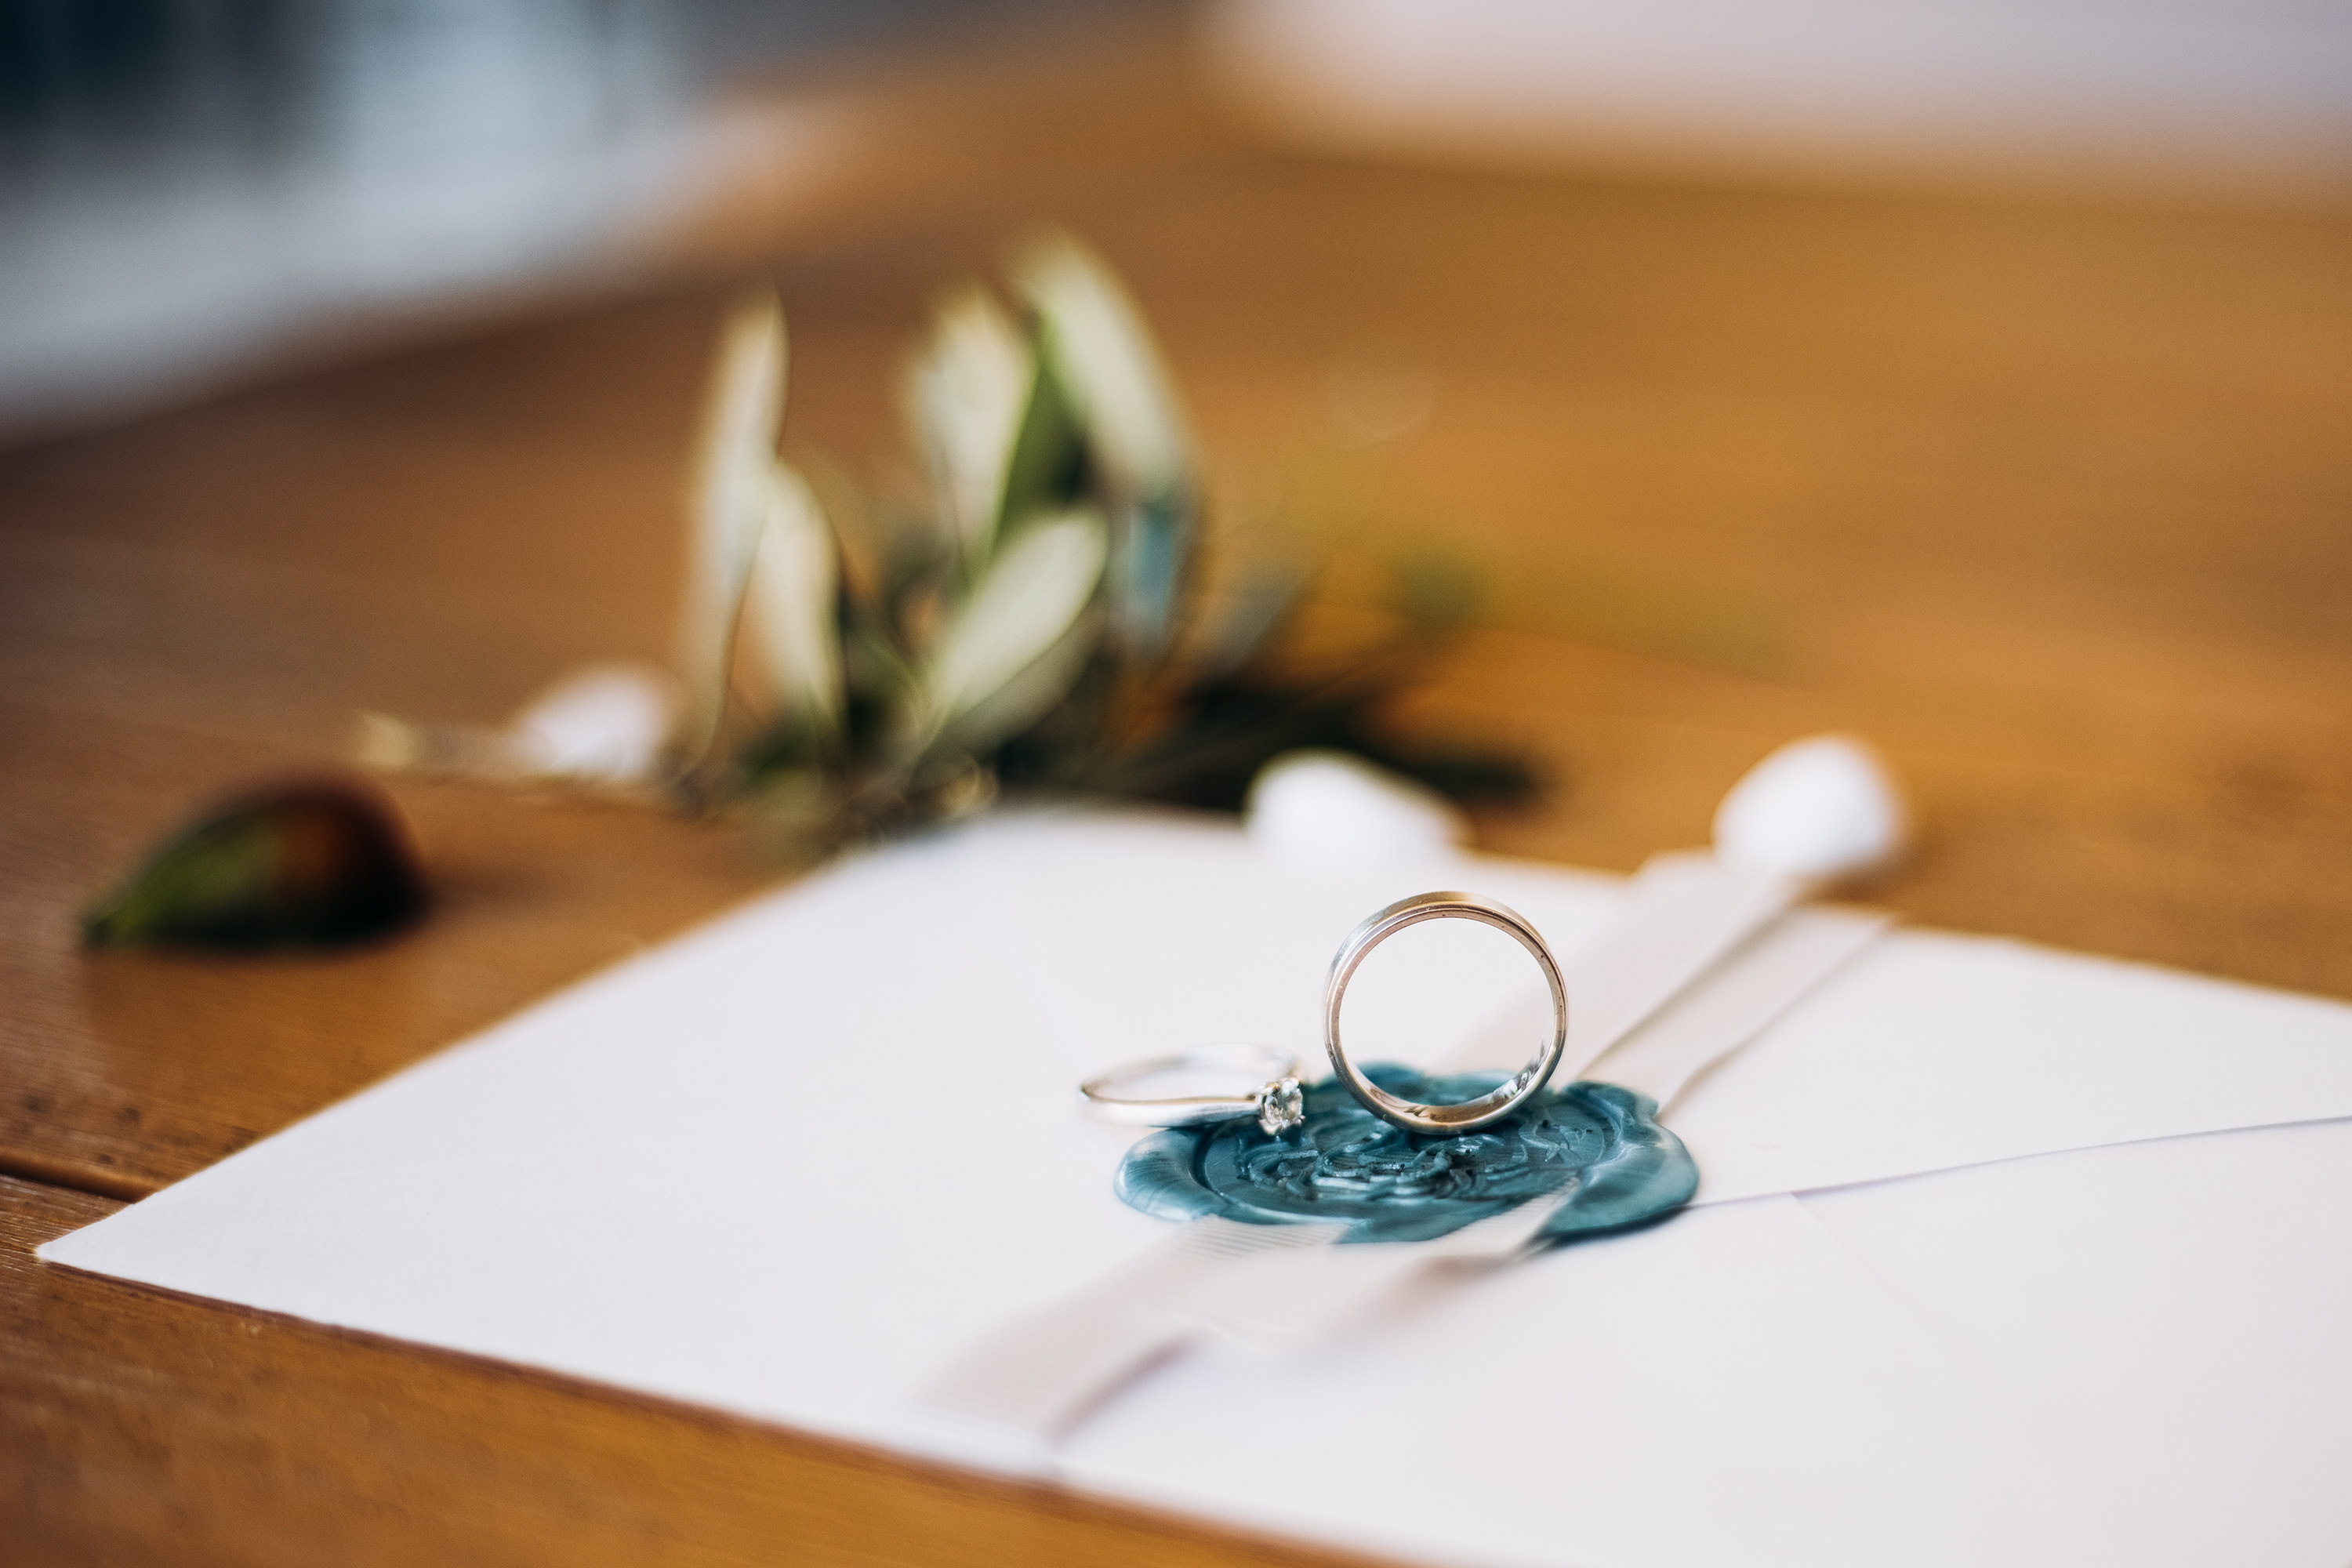 An invitation card with two rings laid on top